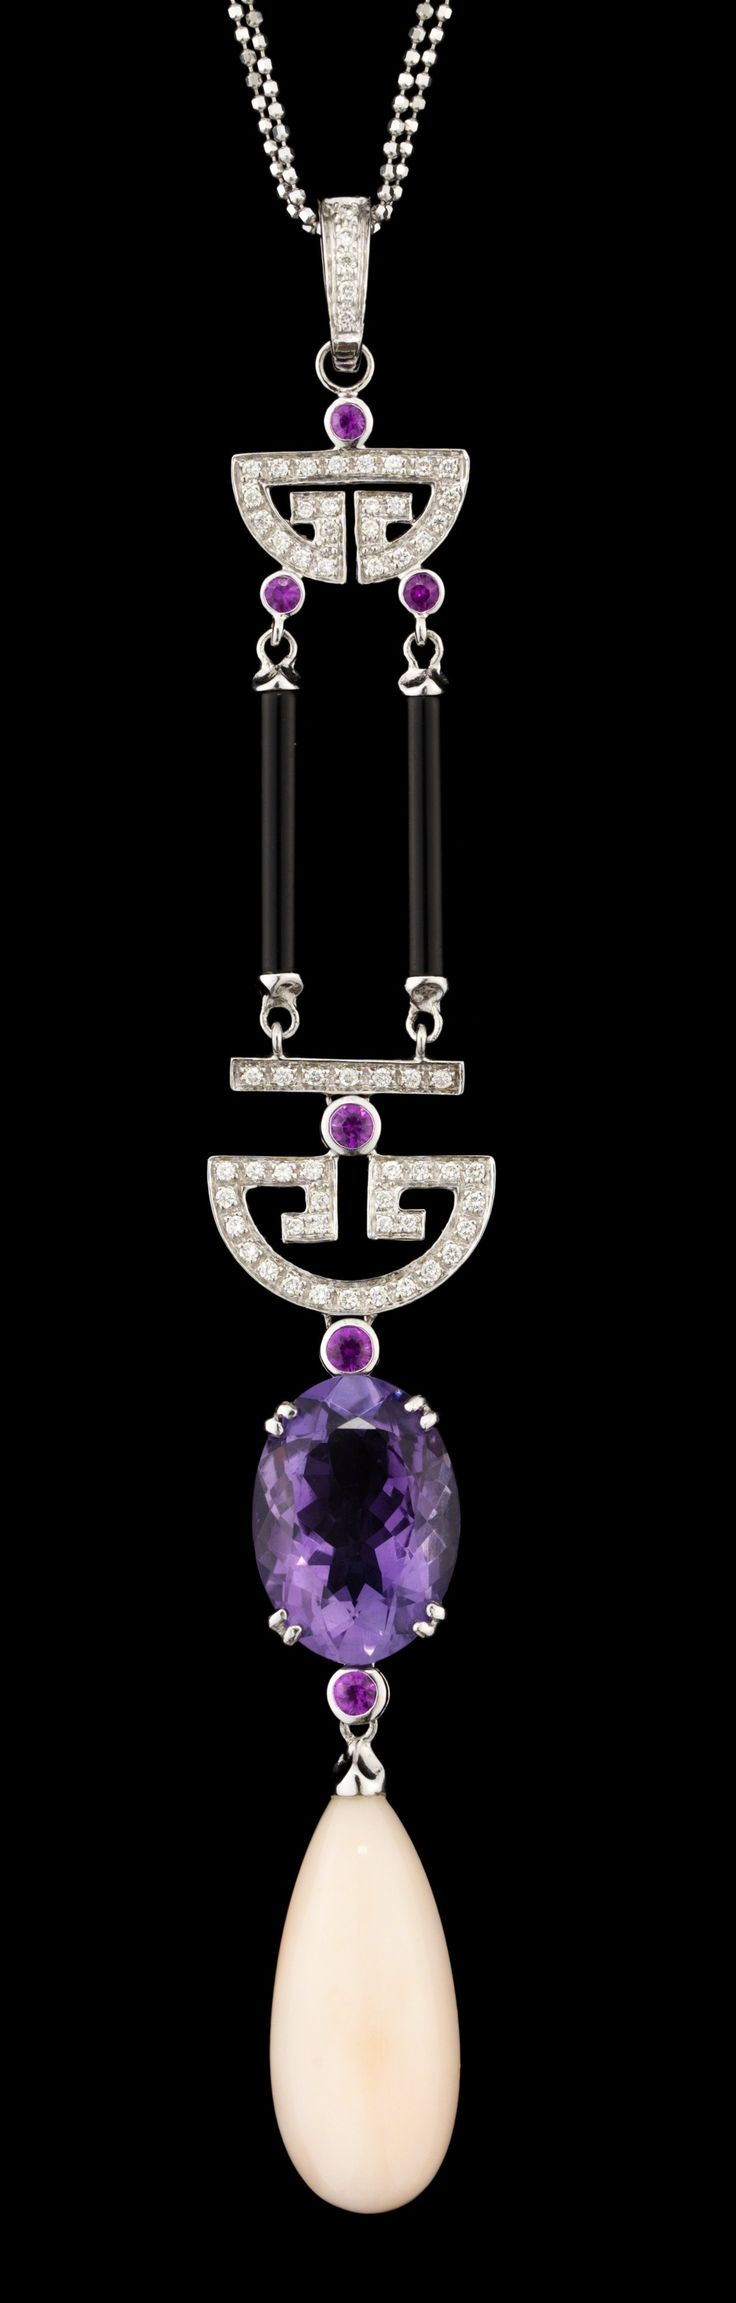 Oh wow, this pendant leaves me rather speechless. An Art Deco-style gold, diamond, ruby, onyx, amethyst and coral pendant.